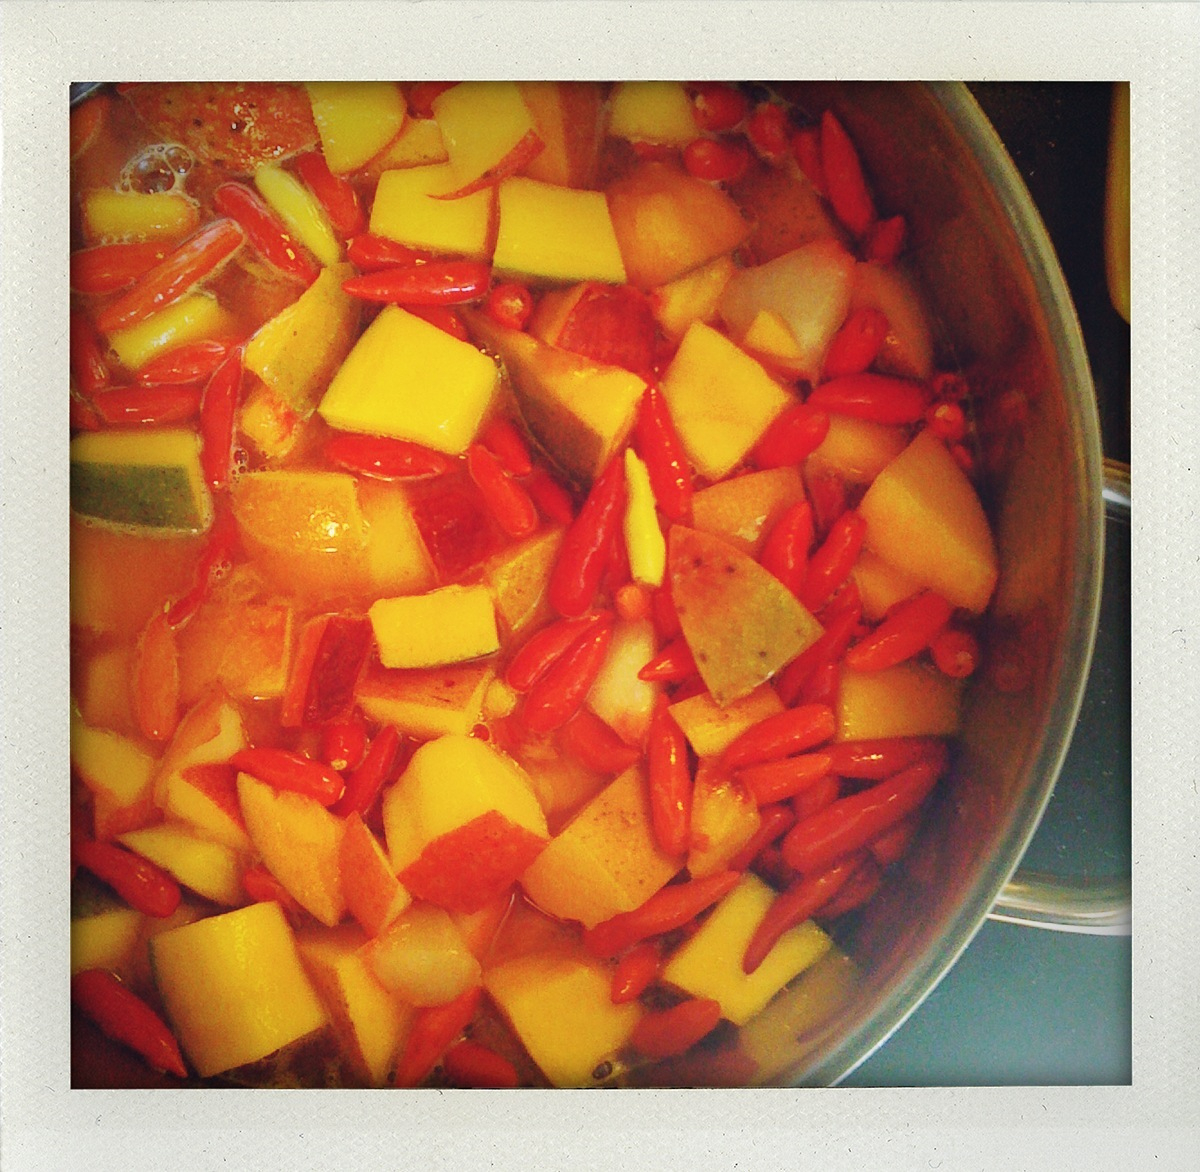 hot sauce makin'